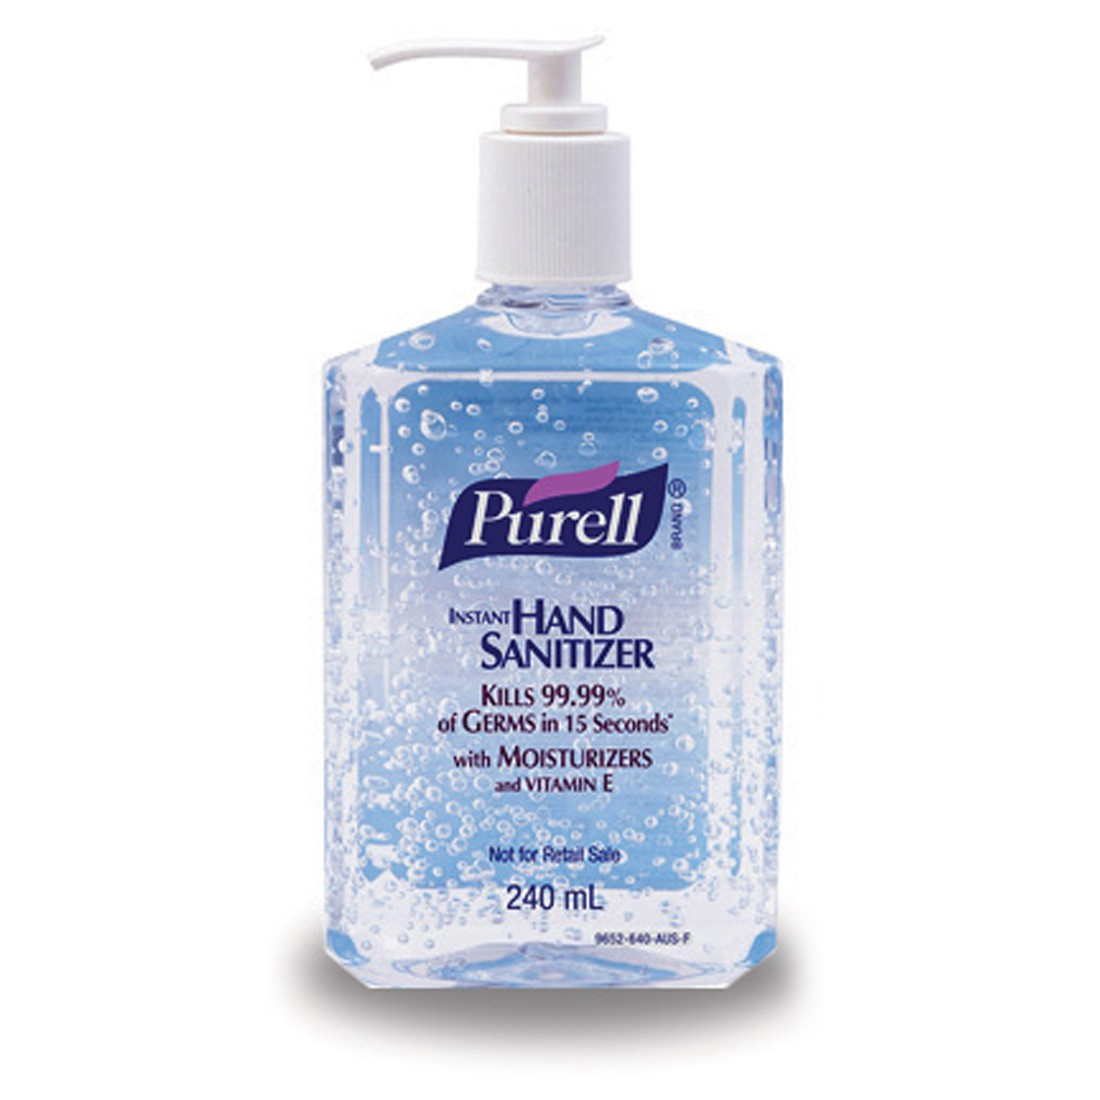 Image result for hand sanitizer